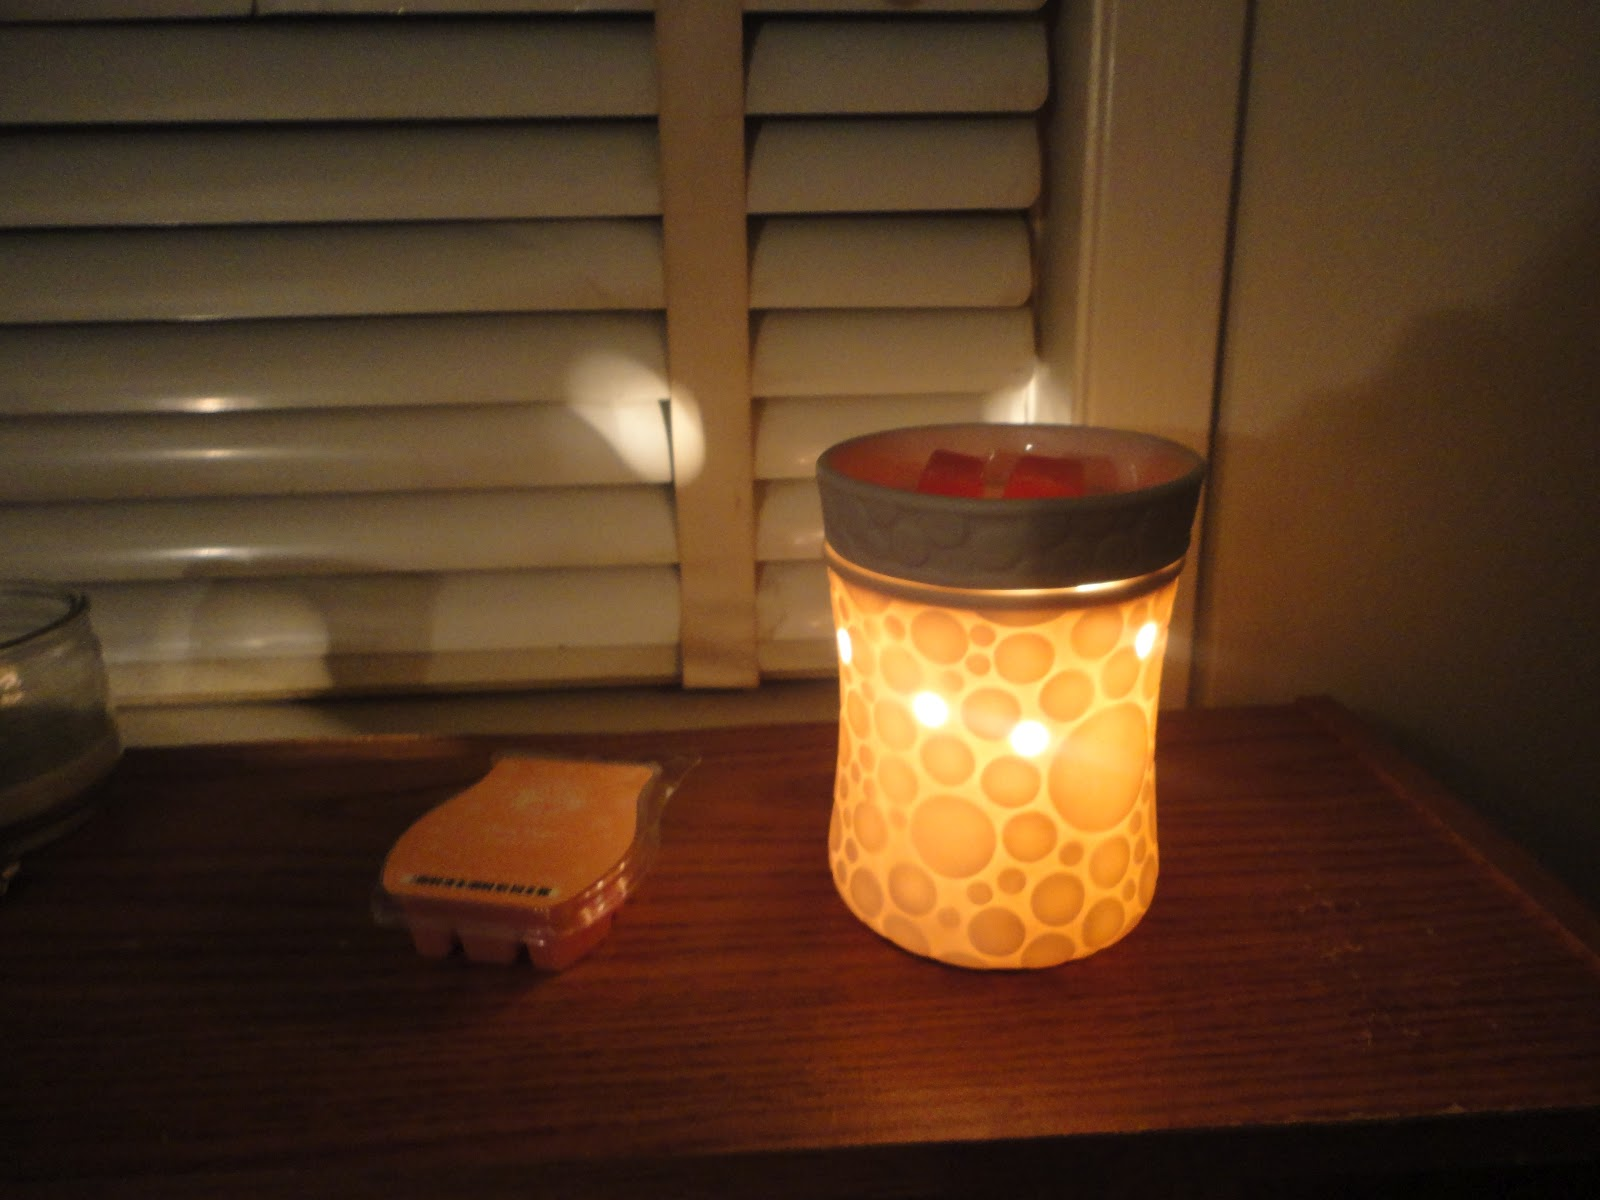 Nikki\'s Tried and True Reviews: Scentsy Vs Scentsationals Vs Better ...